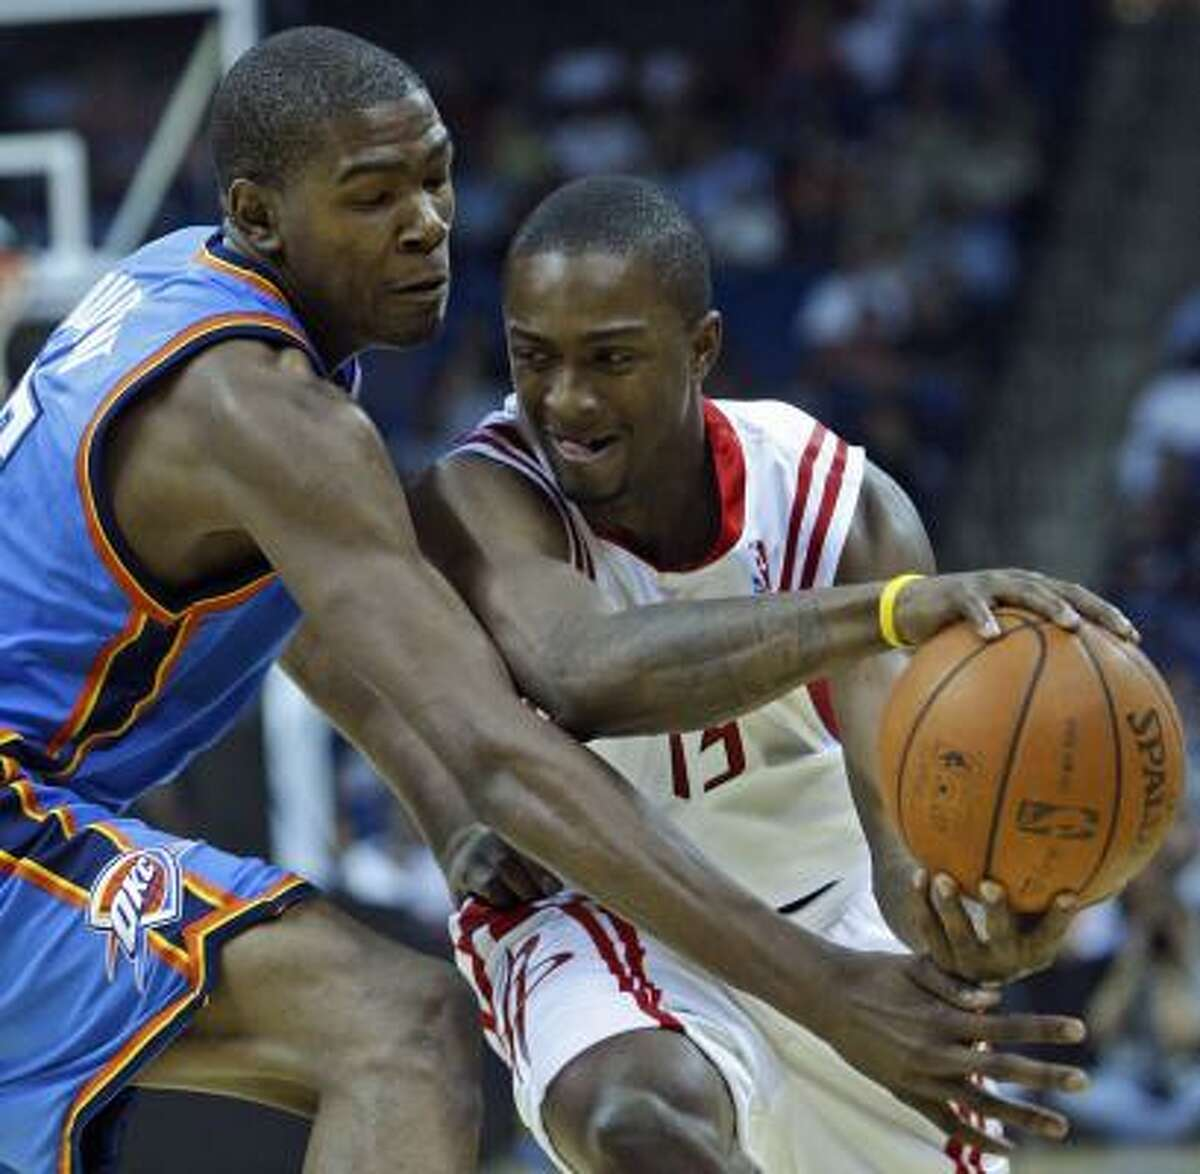 Oklahoma City Thunder guard Kevin Durant, left, reaches in to stop the drive of Rockets guard Von Wafer, right, in the first quarter on Monday in Tulsa, Okla.